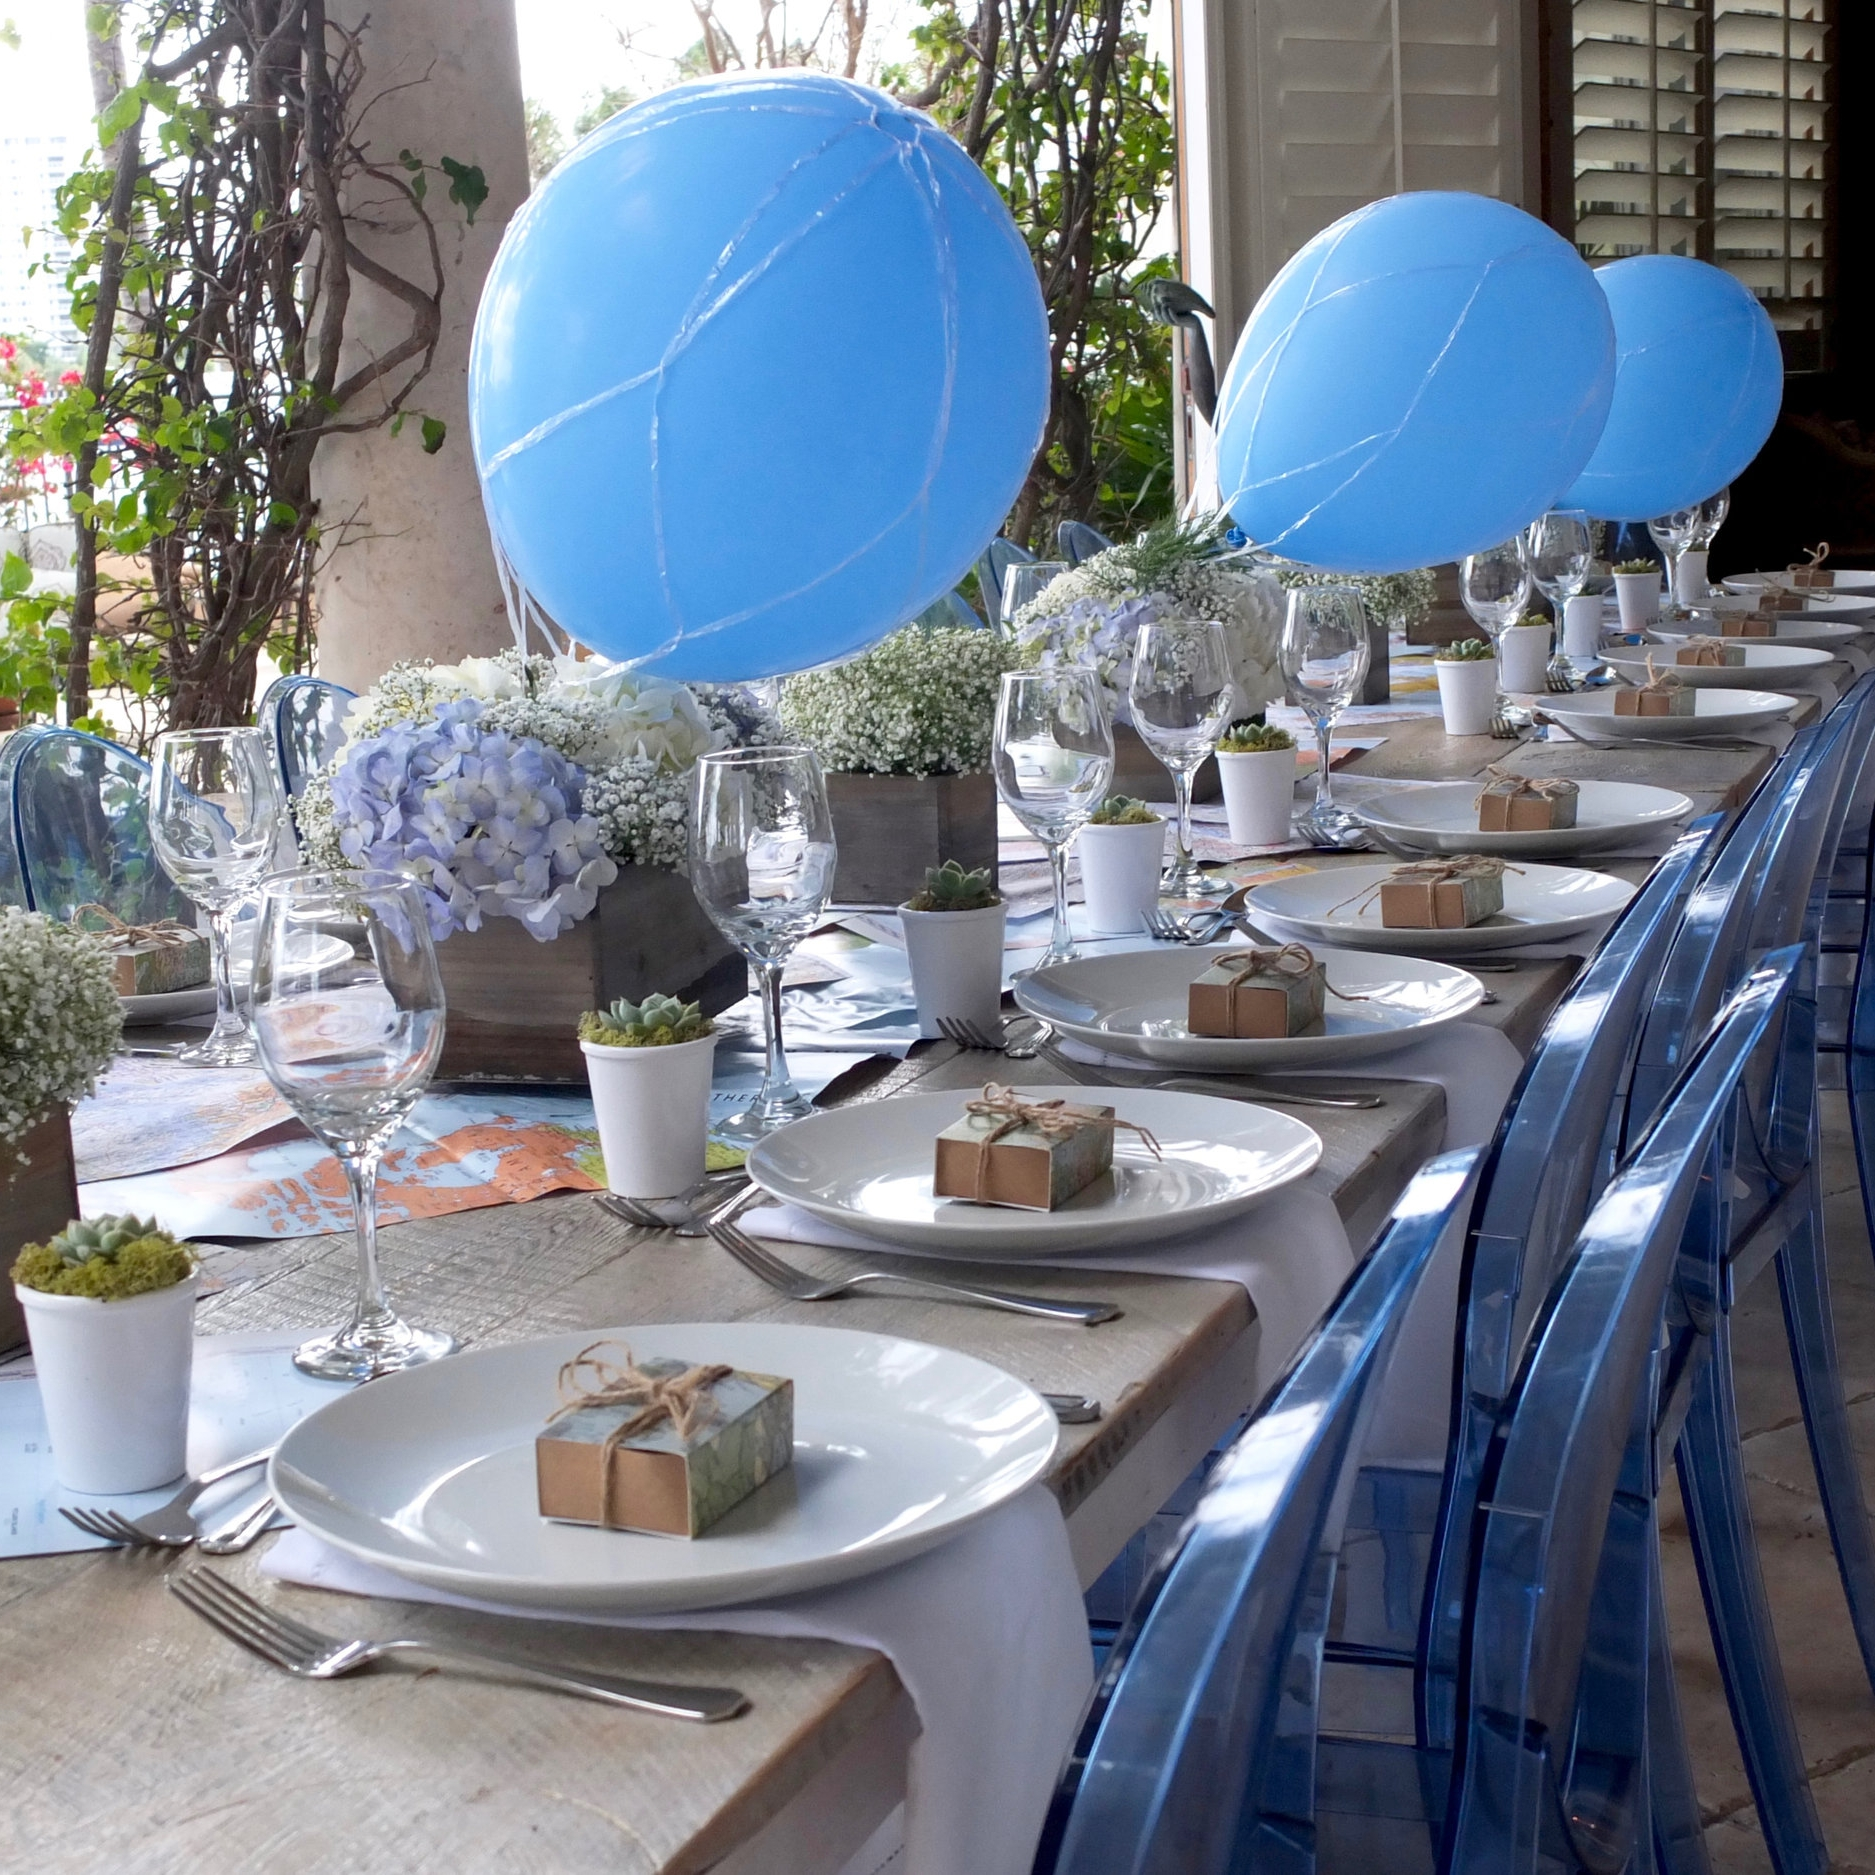 IT'S A BOY! CELEBRATING BABY WITH A BEAUTIFUL TRAVEL THEMED BRUNCH  | A diverse menu was served with vegan options for the family.